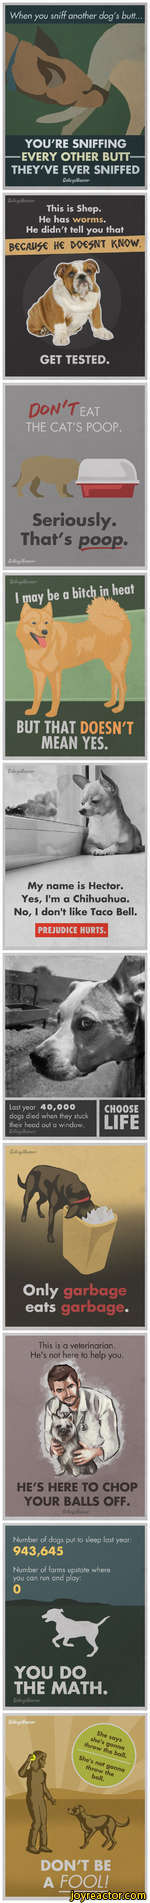 YOU'RE SNIFFING EVERY OTHER BUTT THEY'VE EVER SNIFFEDGoUegdhSeriously. That's poop.My name is Hector. Yes, I'm a Chihuahua. No, I don't like Taco Bell.PREJUDICE HURTS.Last year 40,000 dogs died when they stuck their head out a window.GdkfdfumonGoUegdhmonHE'S HERE TO CHOP YOUR BALLS OFF.Number of